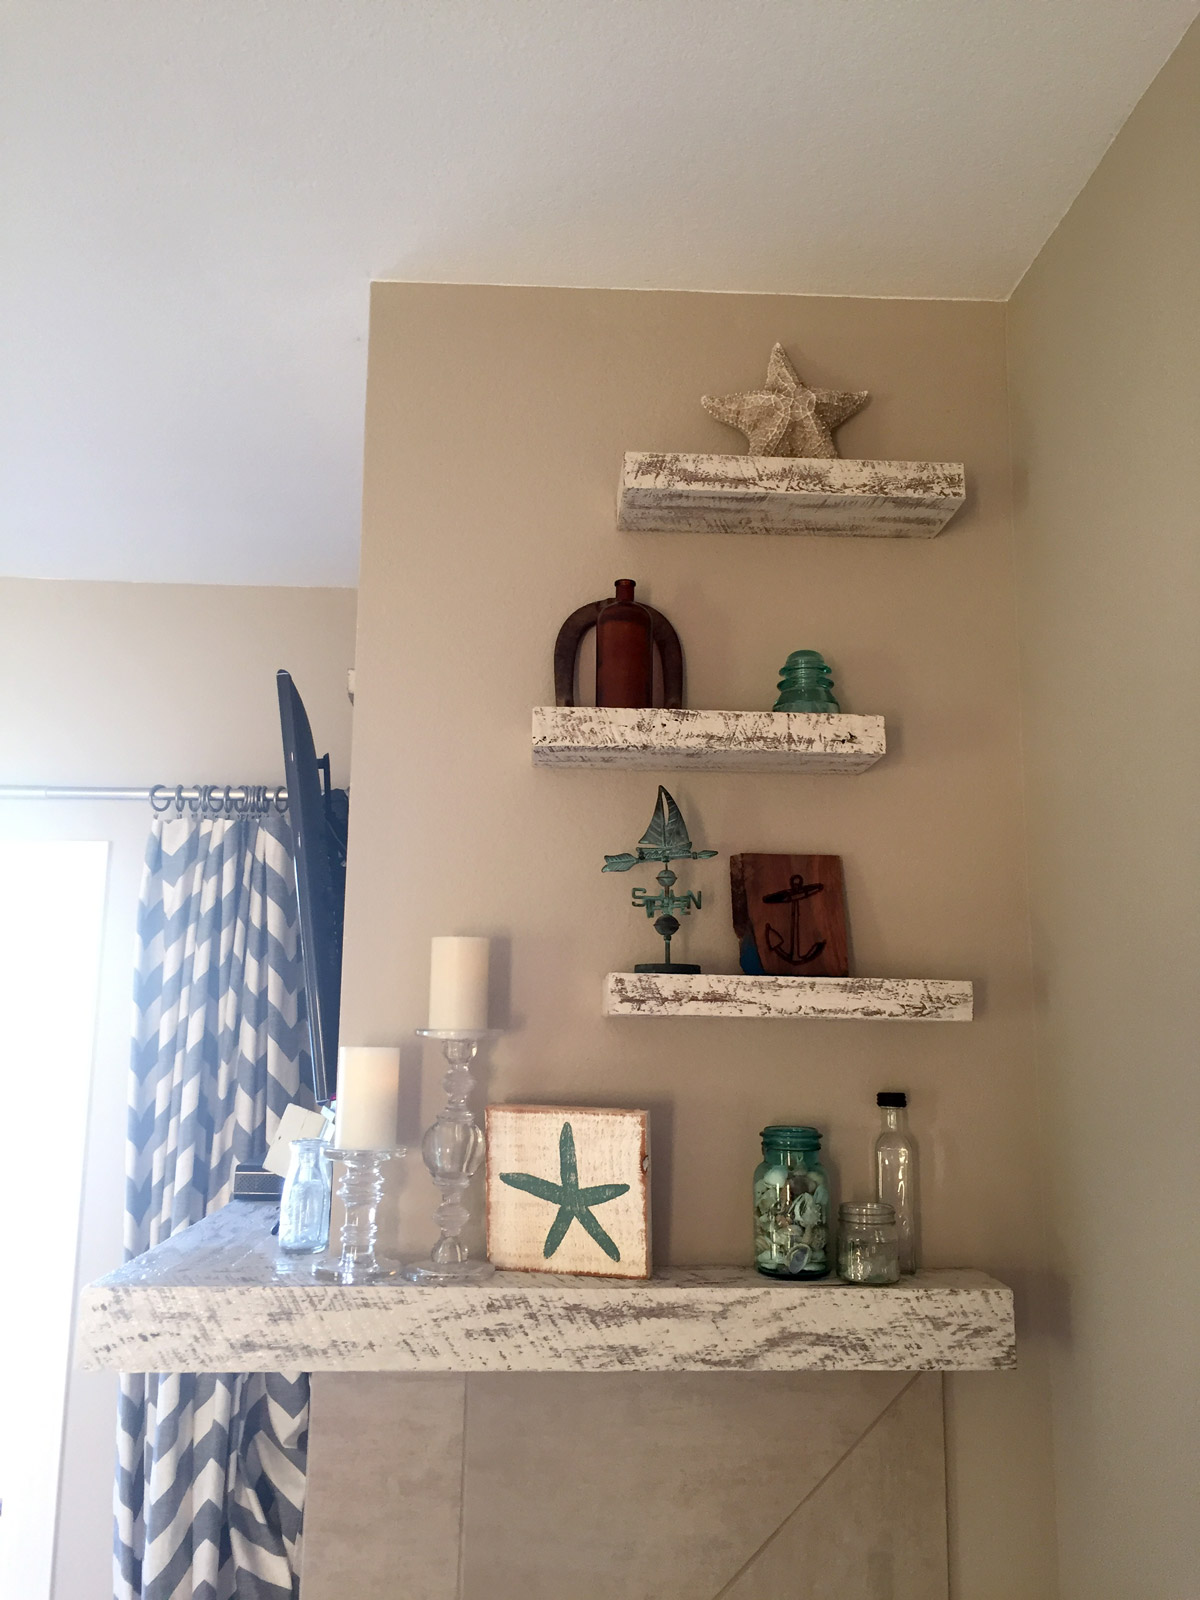 rustic white floating shelves and custom corner mantel shelf installed our etsy customer purchase desk bookshelf waterproof shower walls crown molding reception wall mount without